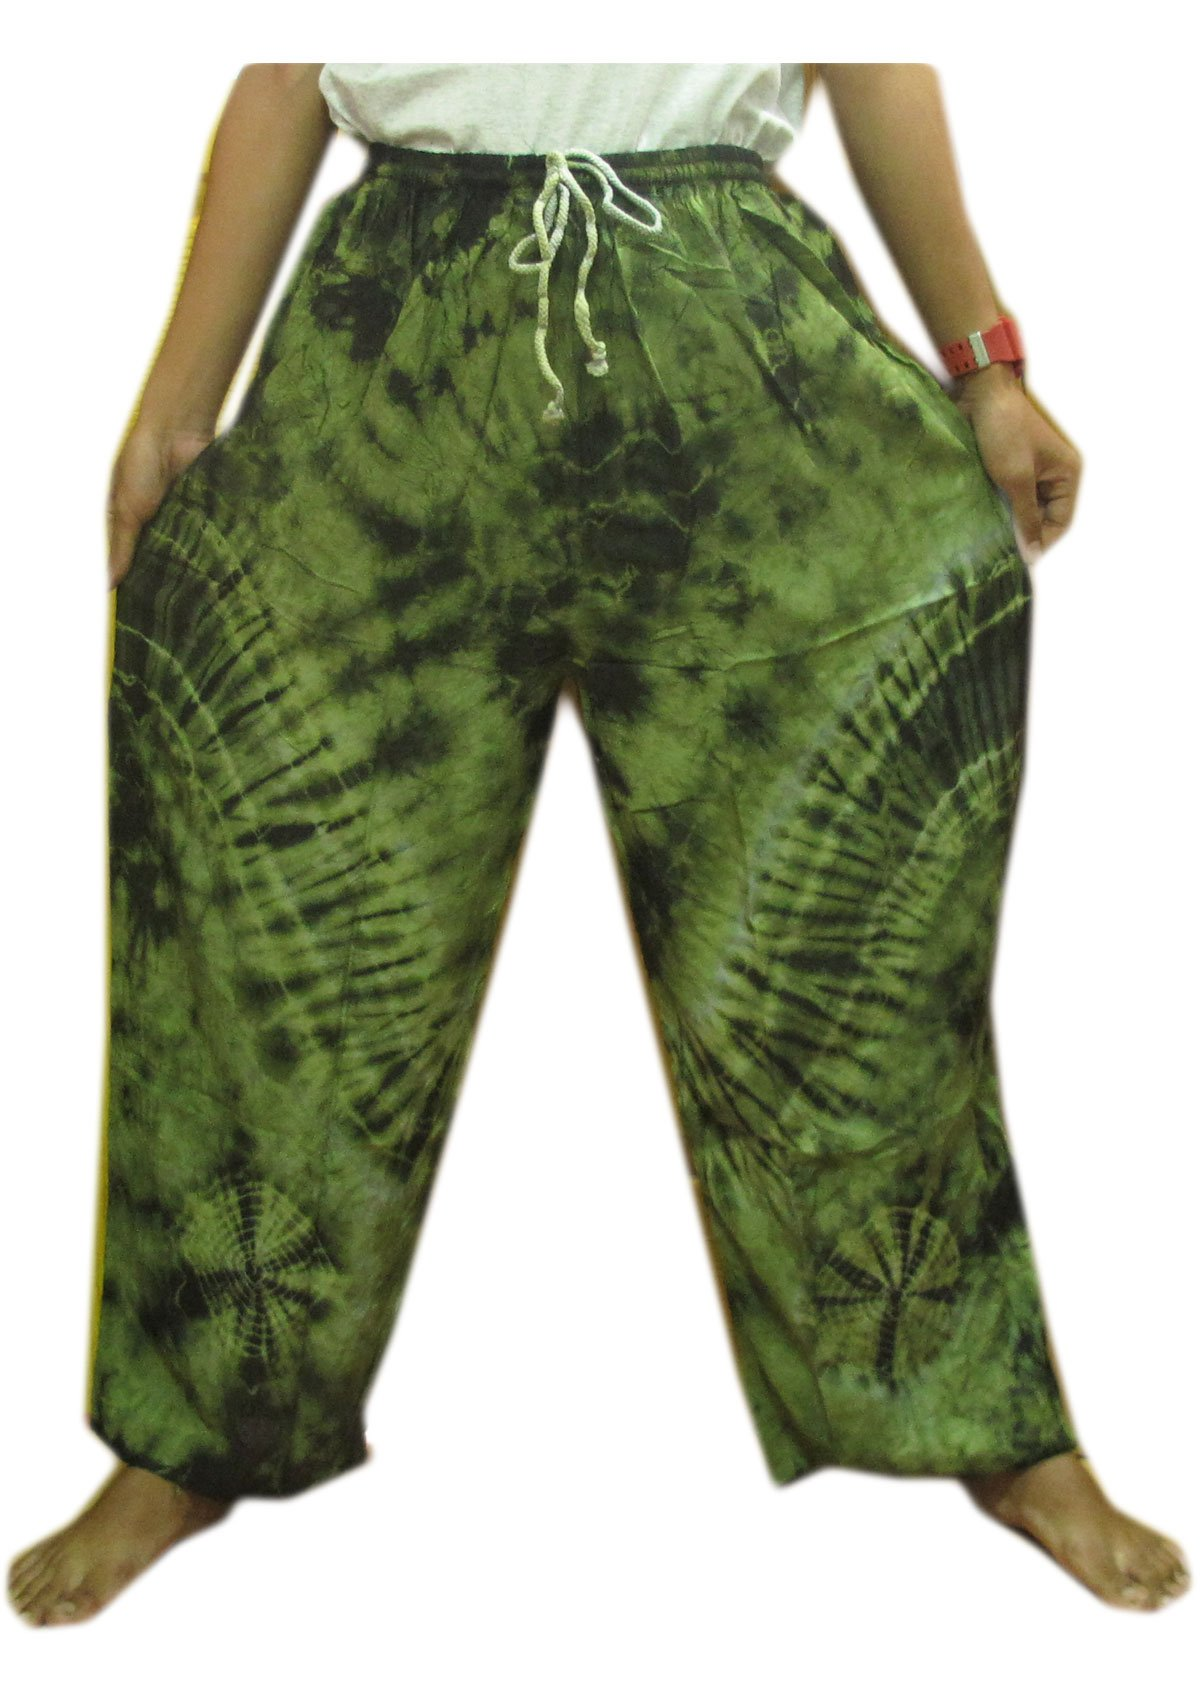 Hippie Cotton Rayon Tie Dye Fisherman Yoka Pants Hippie Baggy by Taladthai